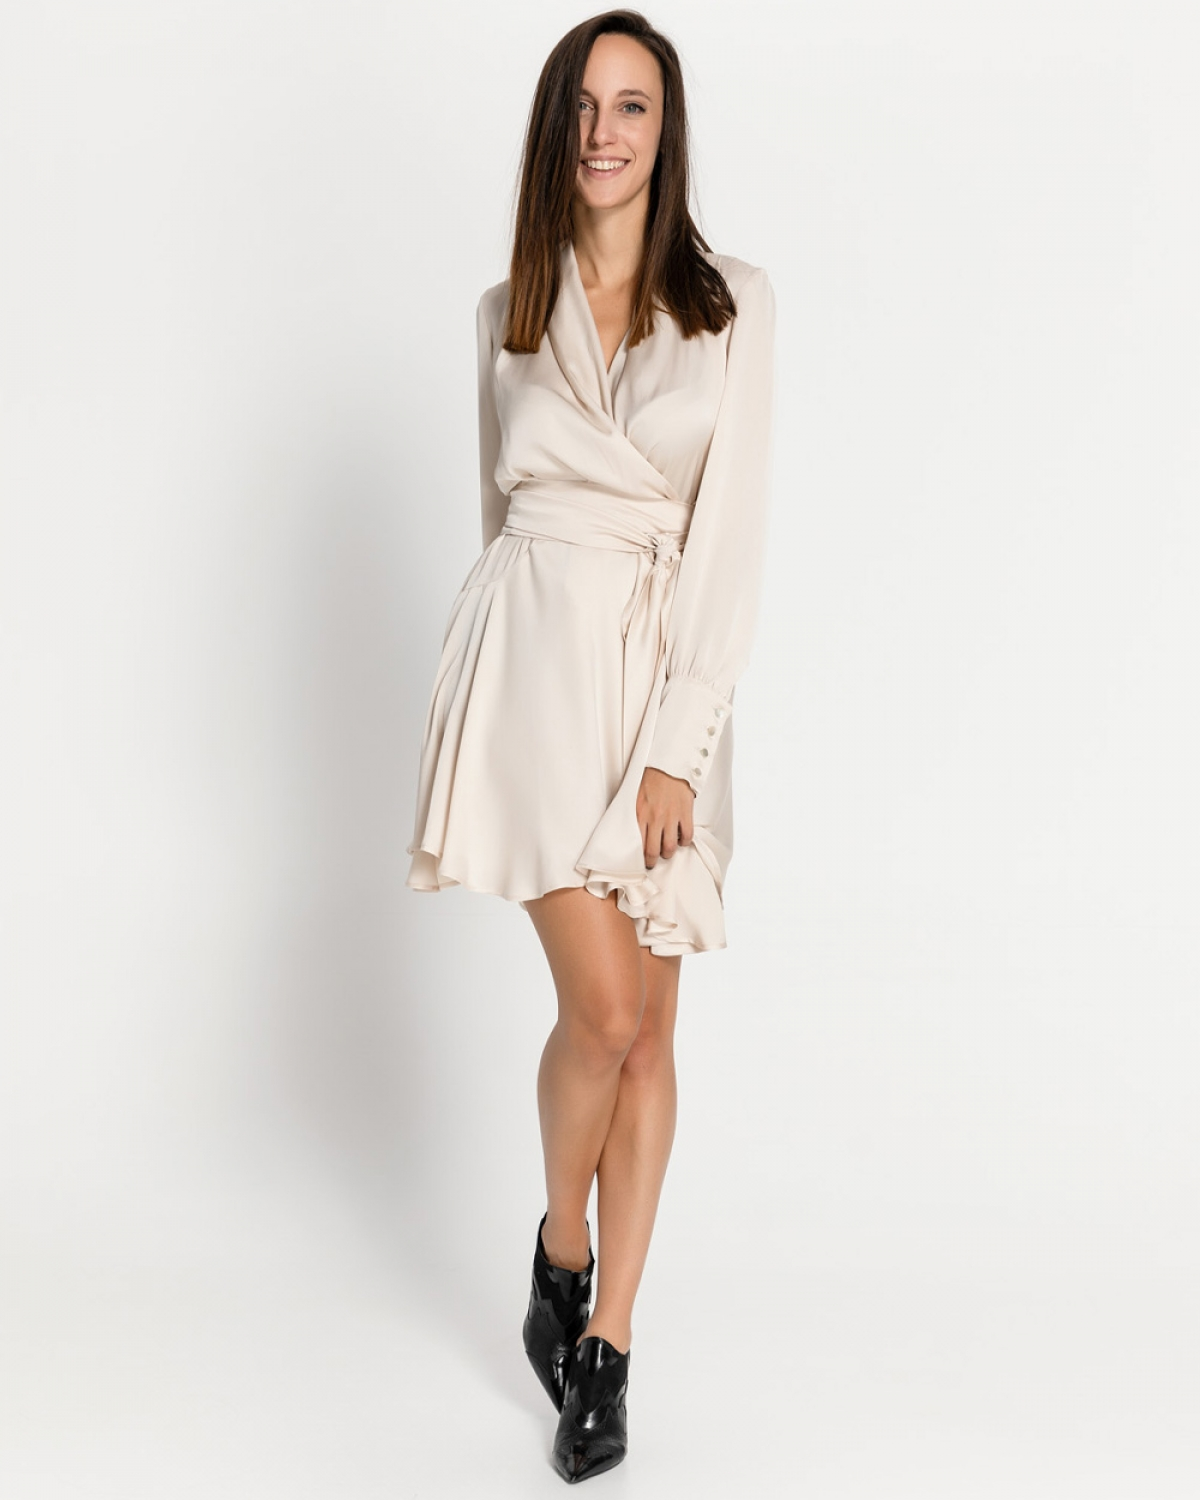 Ecru Silk Mini Dress